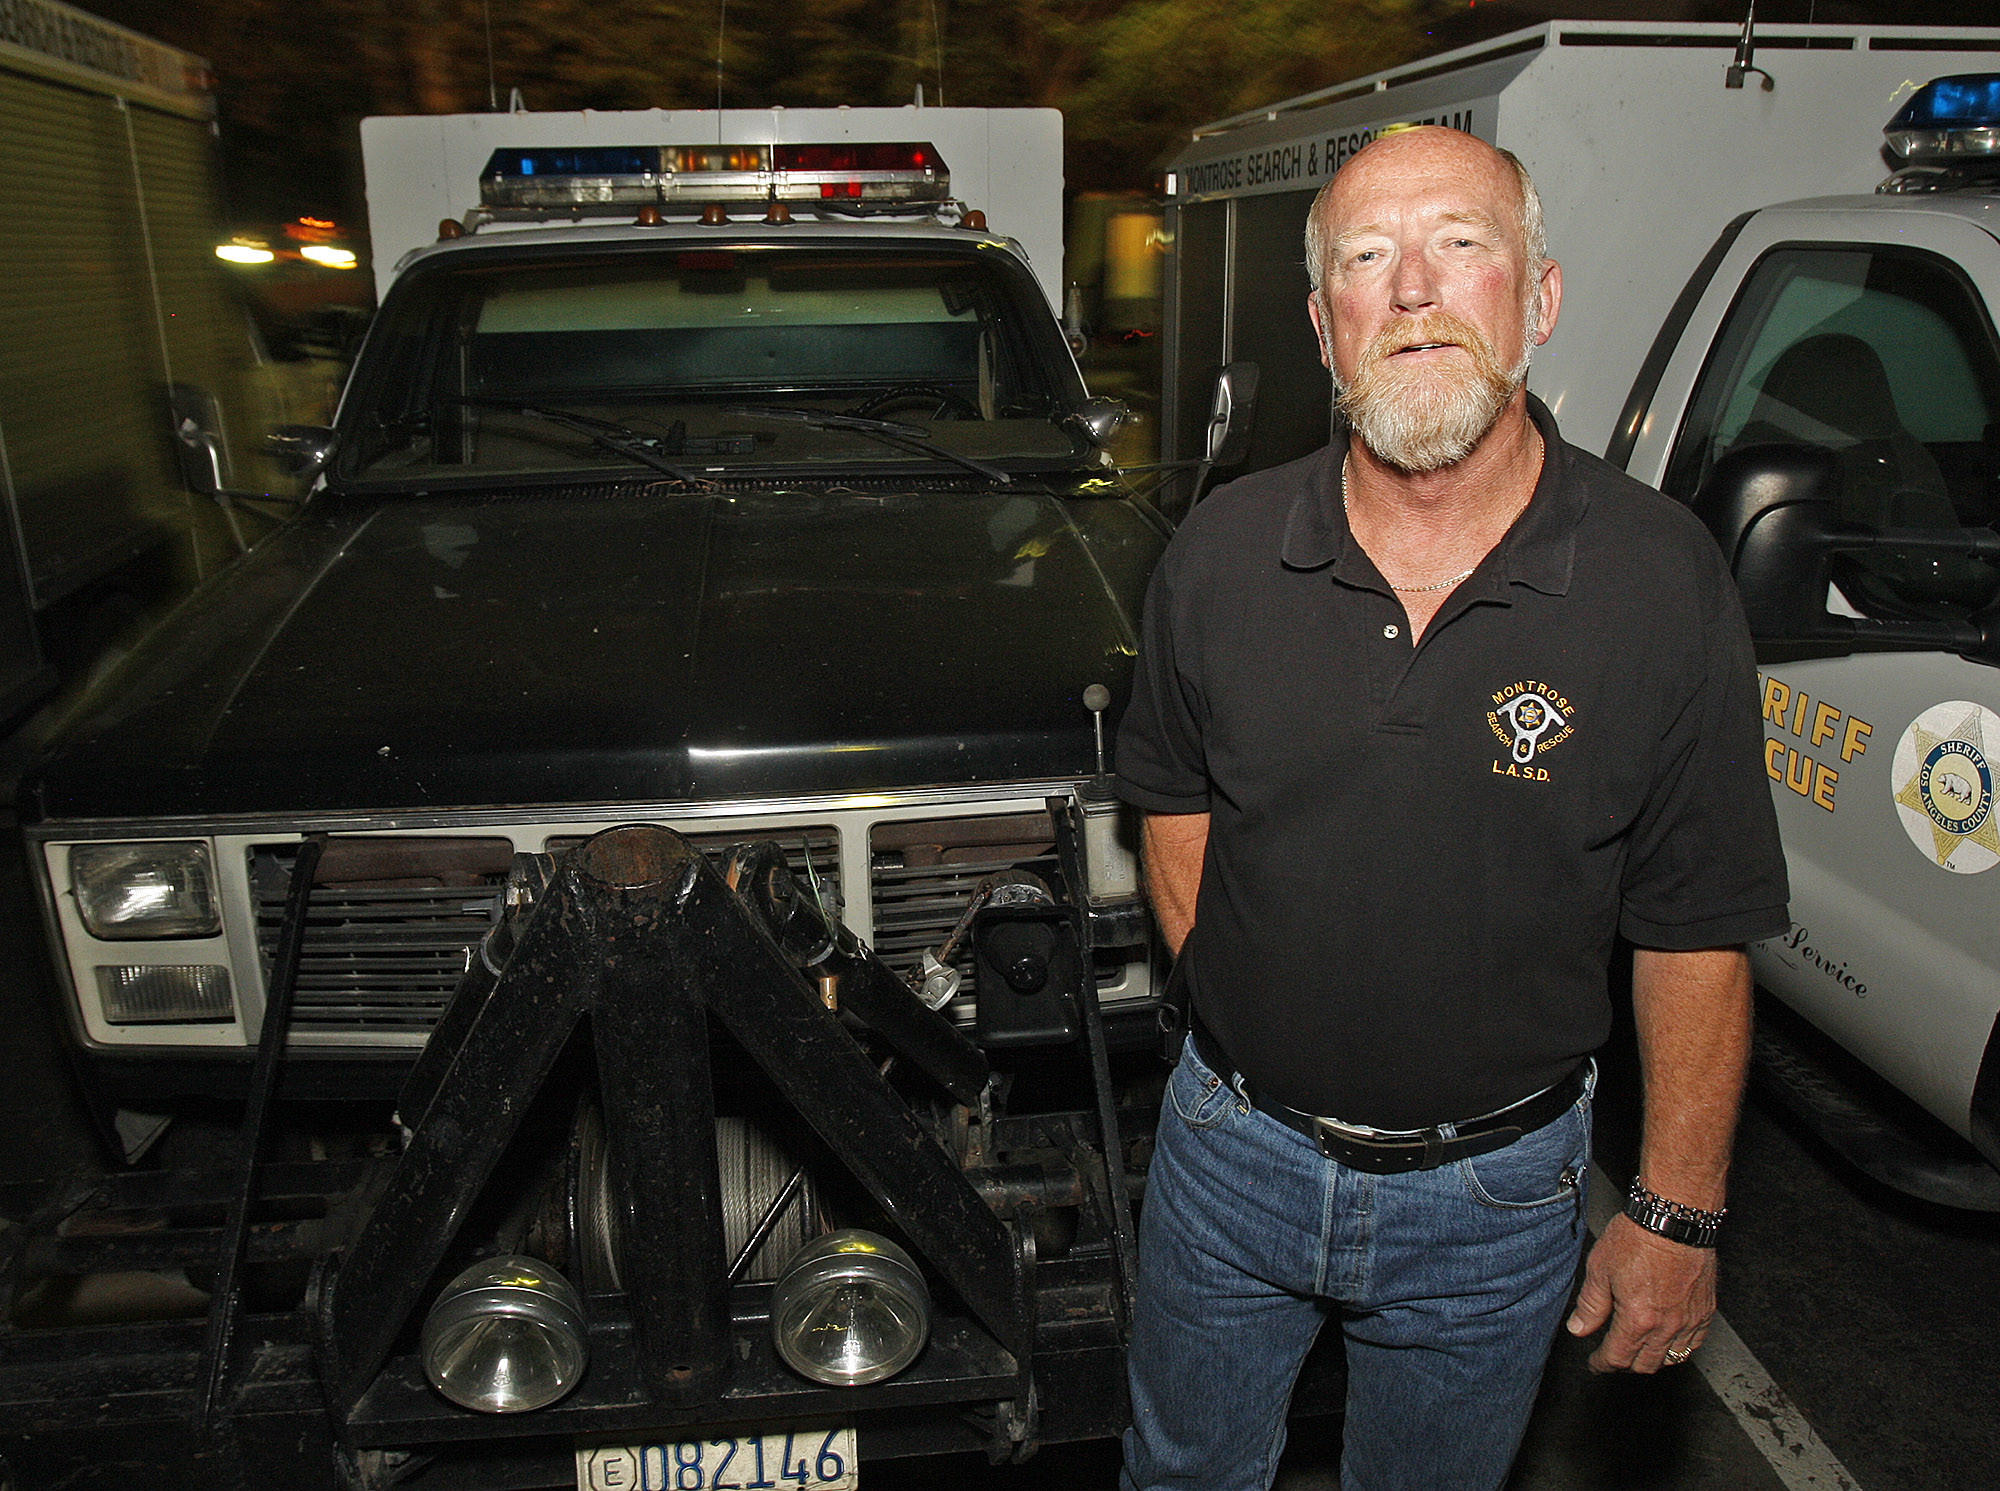 Jerry Hill stands in front of one of the Montrose Search and Rescue team patrol vehicles in La Crescenta on Tuesday, February 11, 2014. Hill recently retired after 34 years as a volunteer with the team.